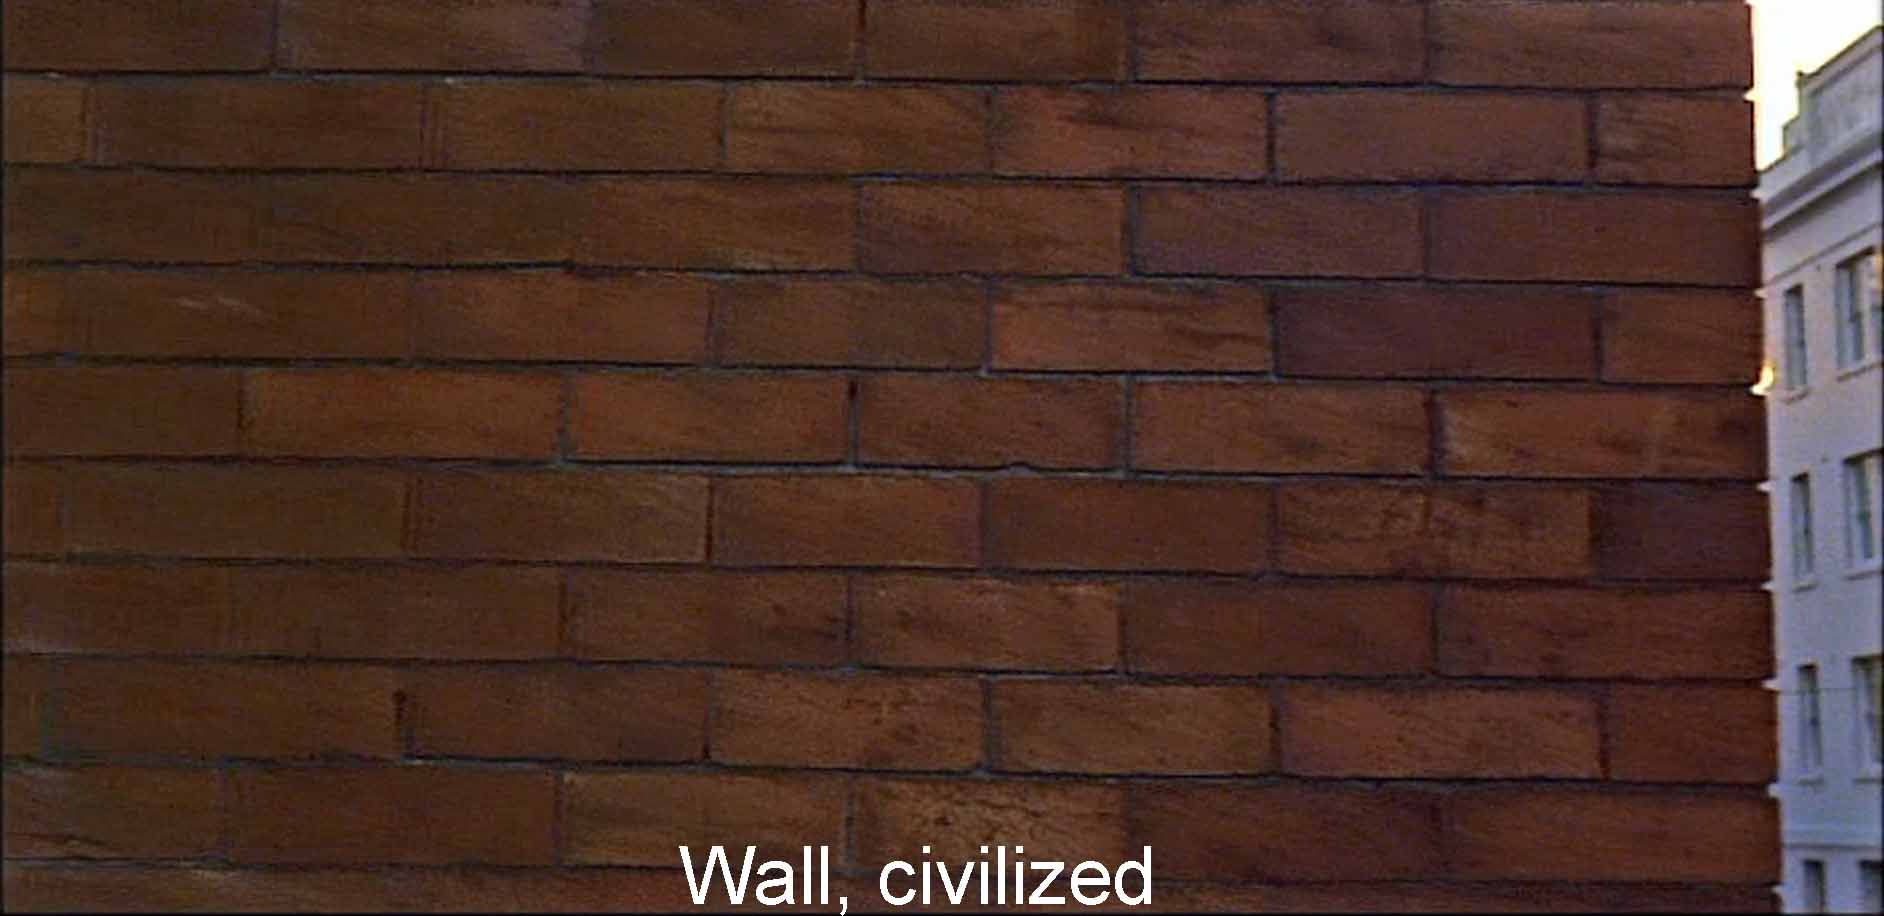 Wall, civilized